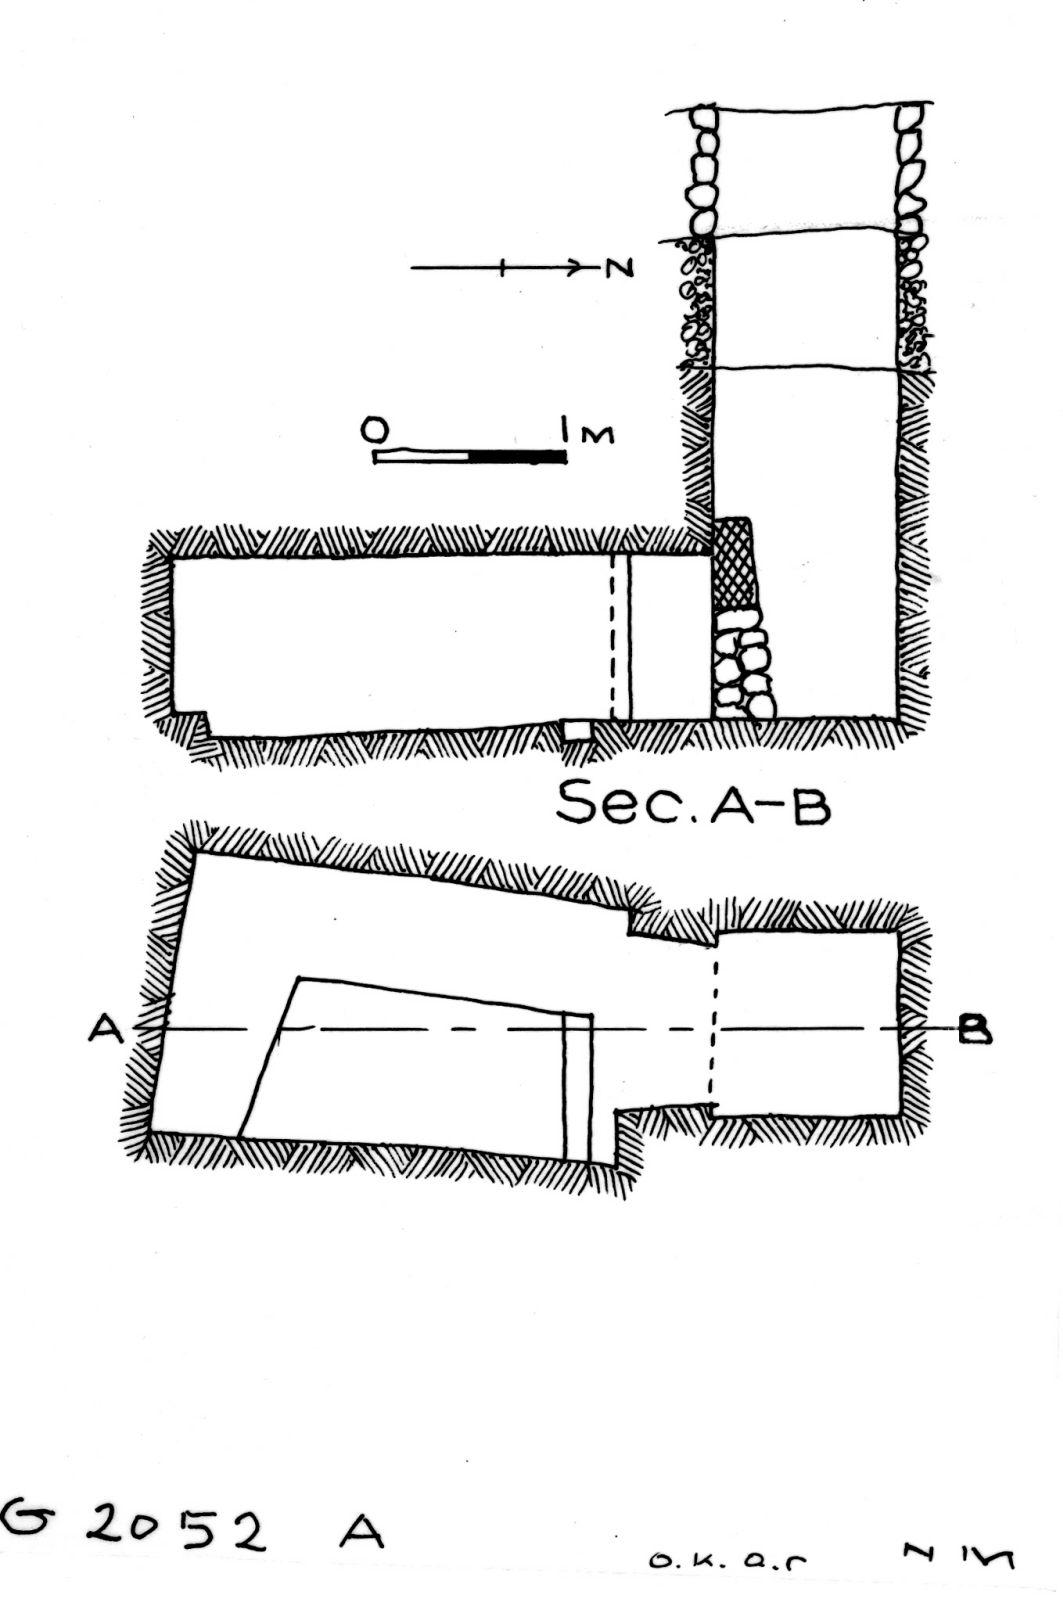 Maps and plans: G 2052, Shaft A